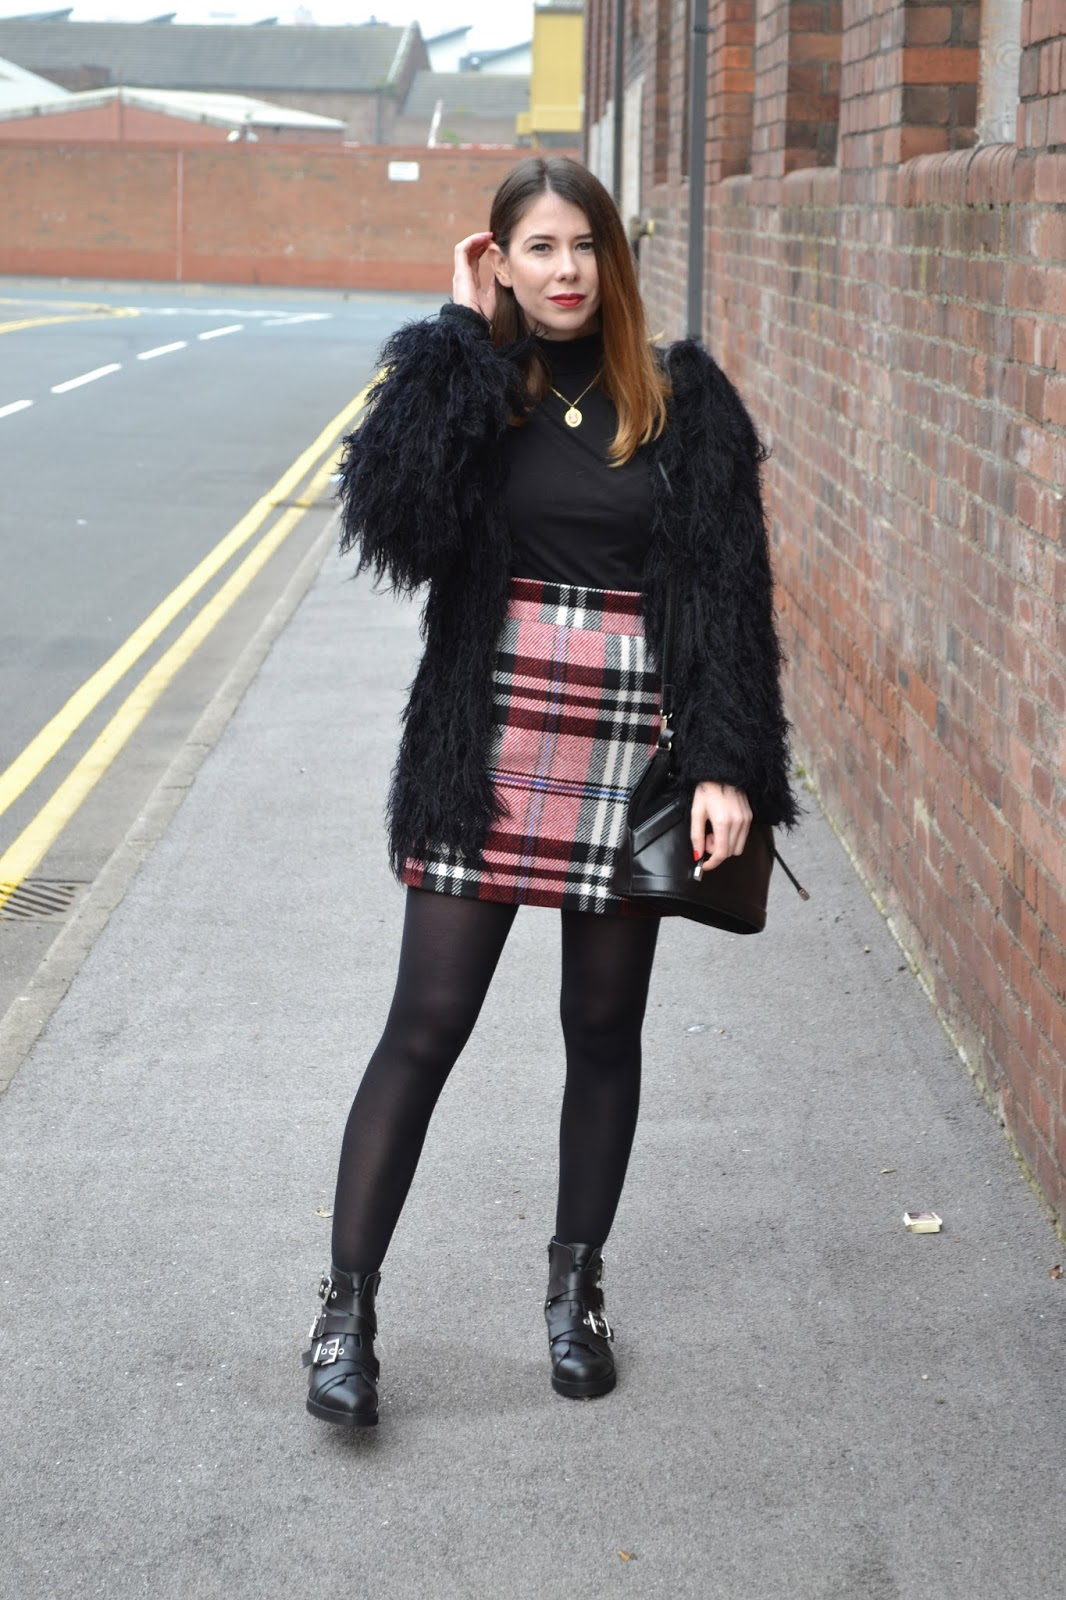 womens affordable highstreet fashion blog featuring British street style. Black polo neck. Topshop tartan skirt. Leather black buckle boots from Kurt Geiger. Black shabby jacket. Hollies closet